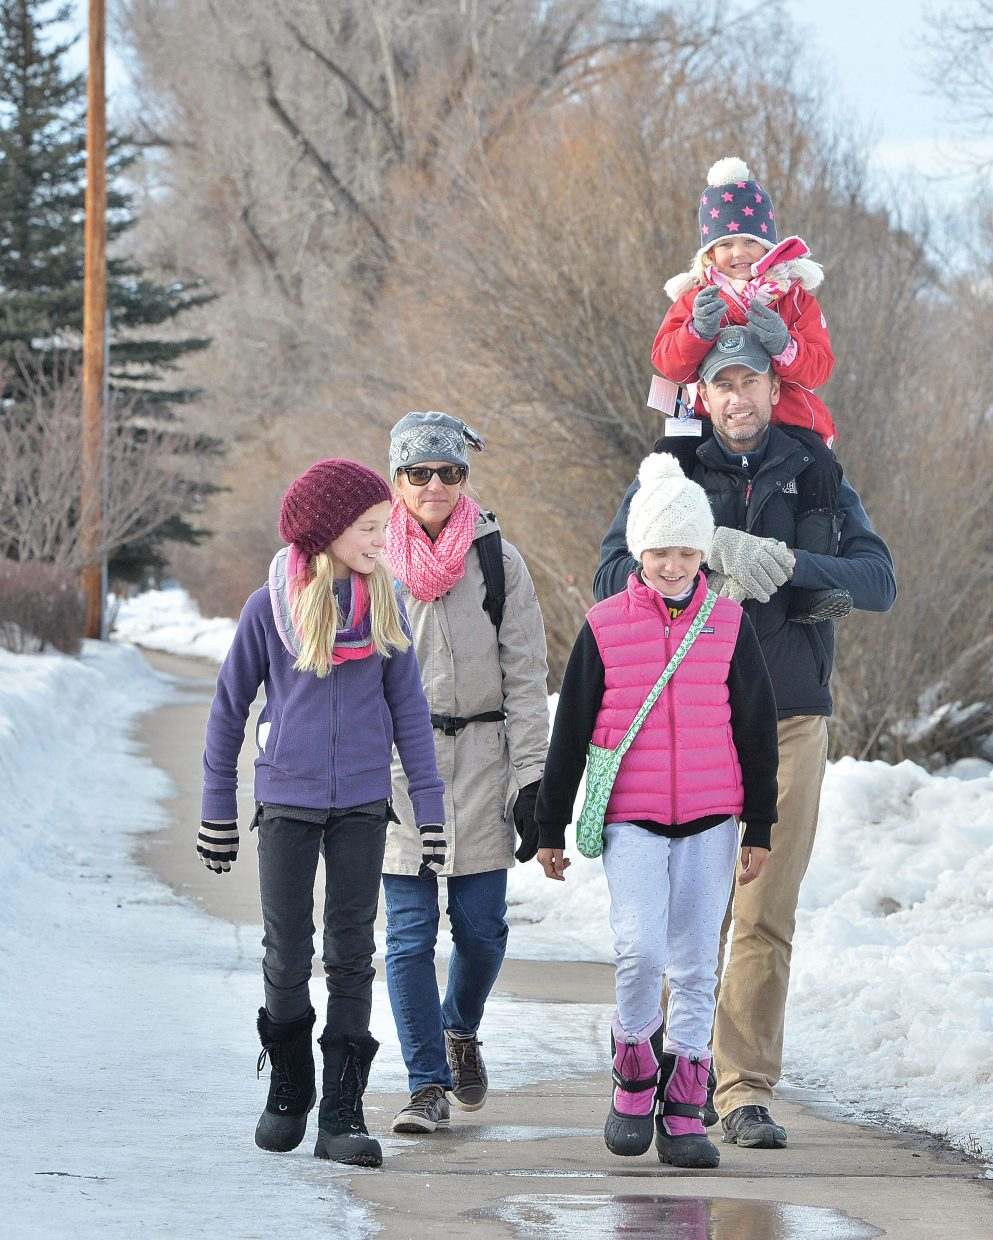 The Edstedt family from Sydney, Australia, took advantage of Friday's warm weather to stroll along the Yampa River Core Trail. The family included, clockwise from left, Ronja, Brigitte, Nick with Freja on his shoulders and Silippa.